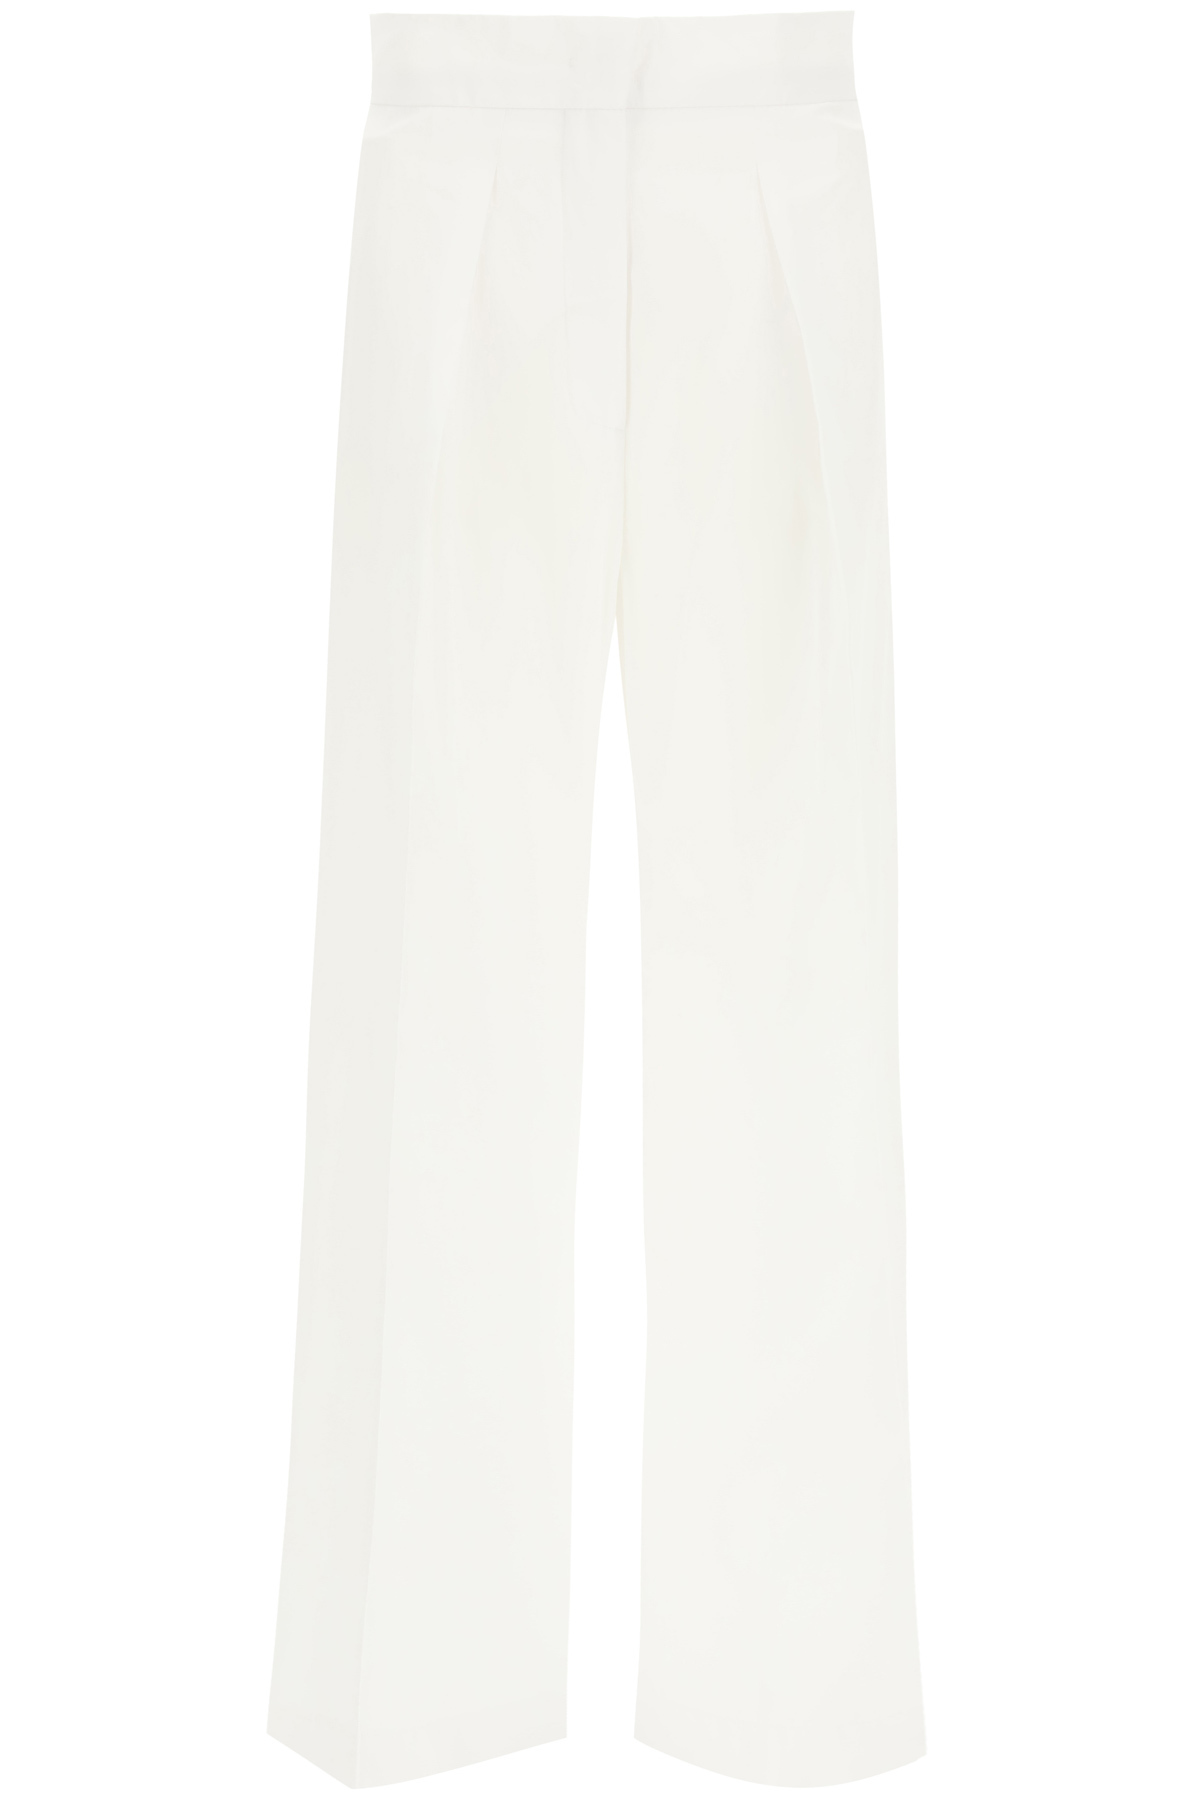 SPORTMAX VISONE COTTON TROUSERS 38 White Cotton